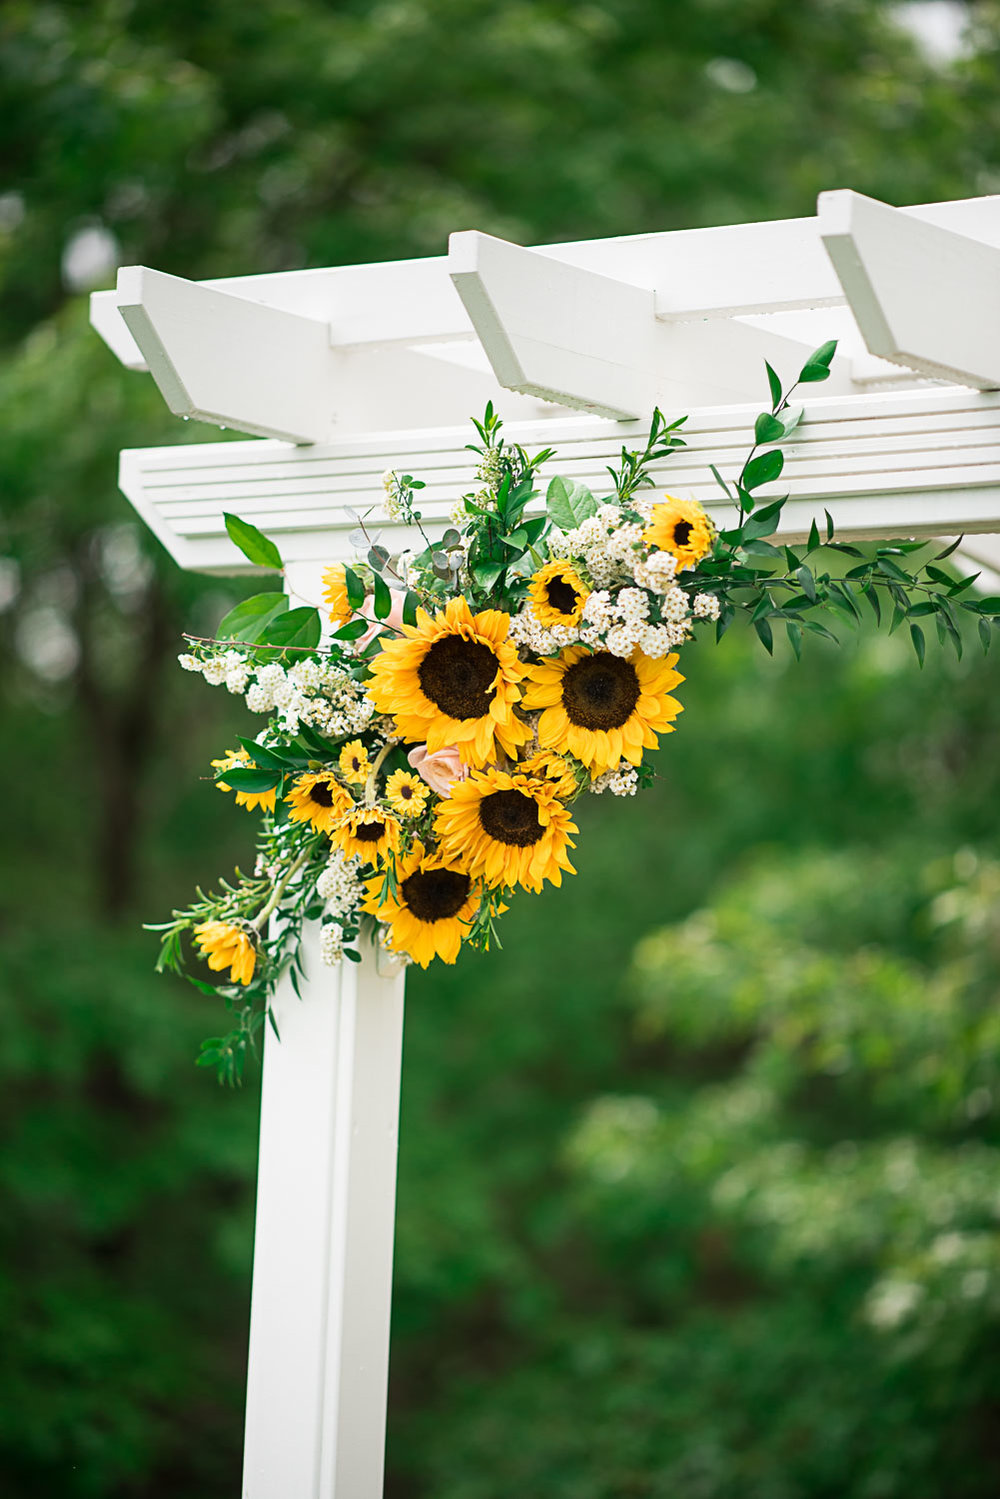 34 Couture Wedding Flowers Wedding Archway Floral.jpg